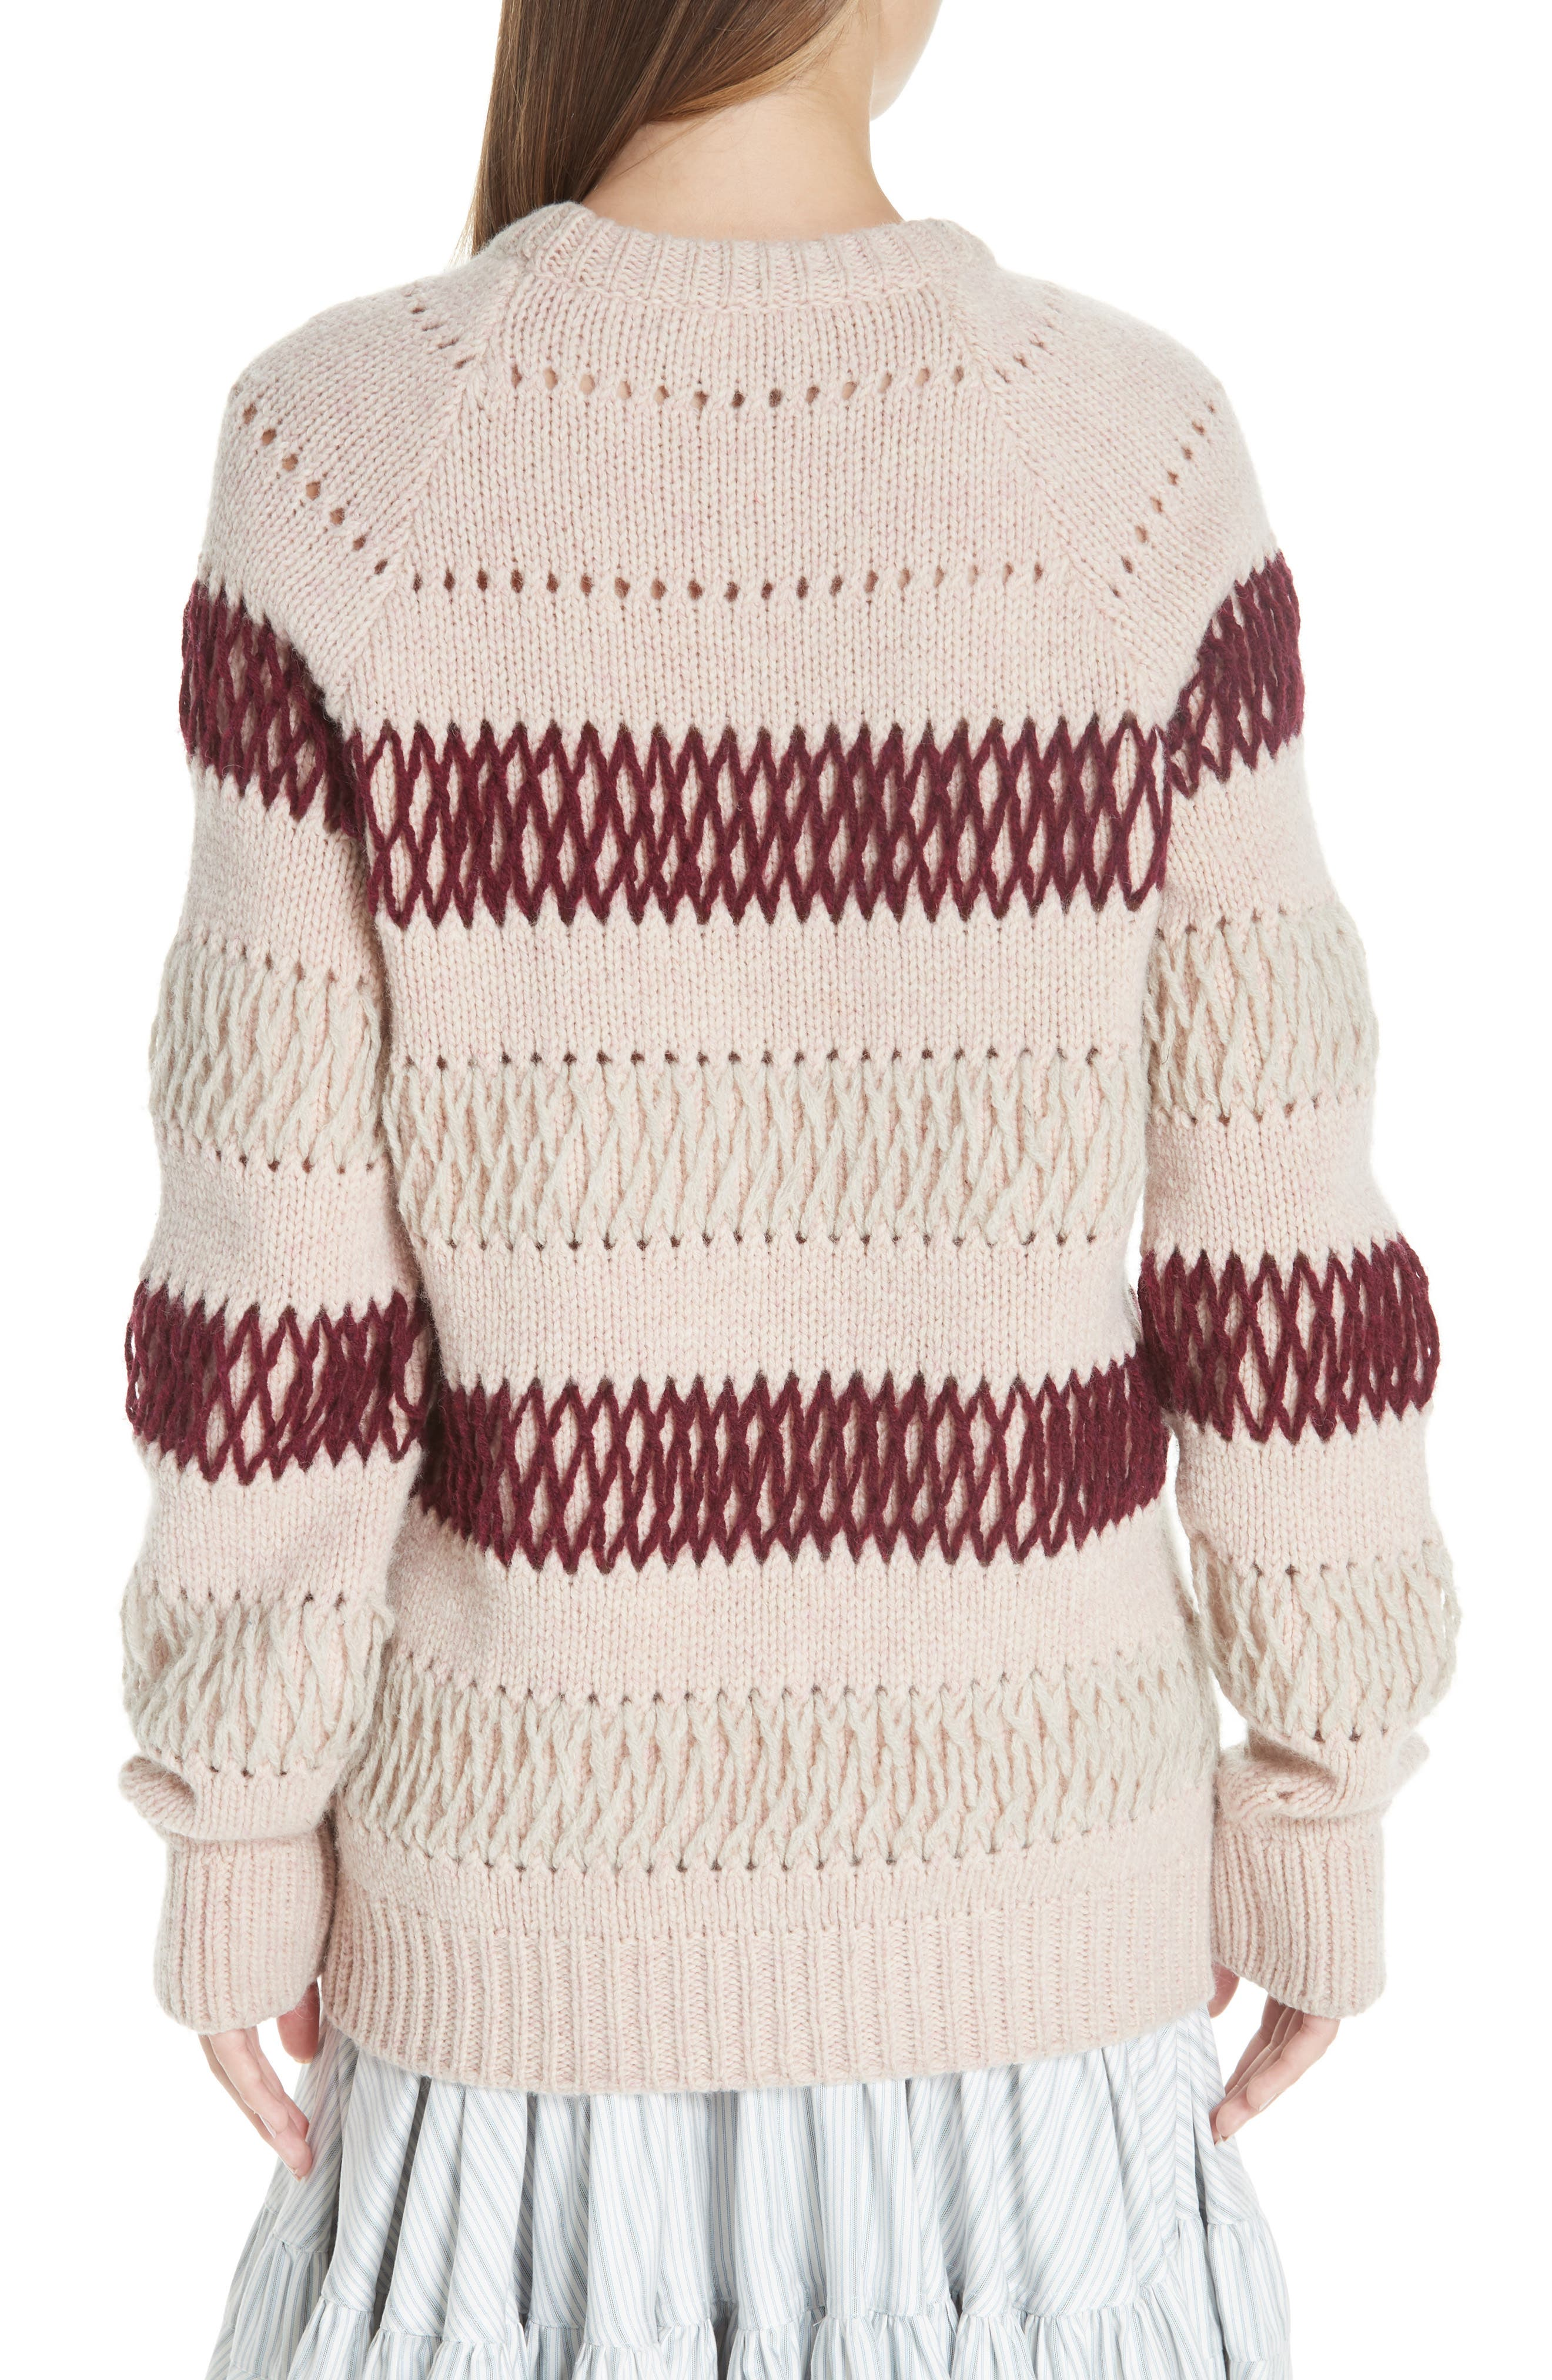 Embroidered Stripe Wool Sweater,                             Alternate thumbnail 2, color,                             650